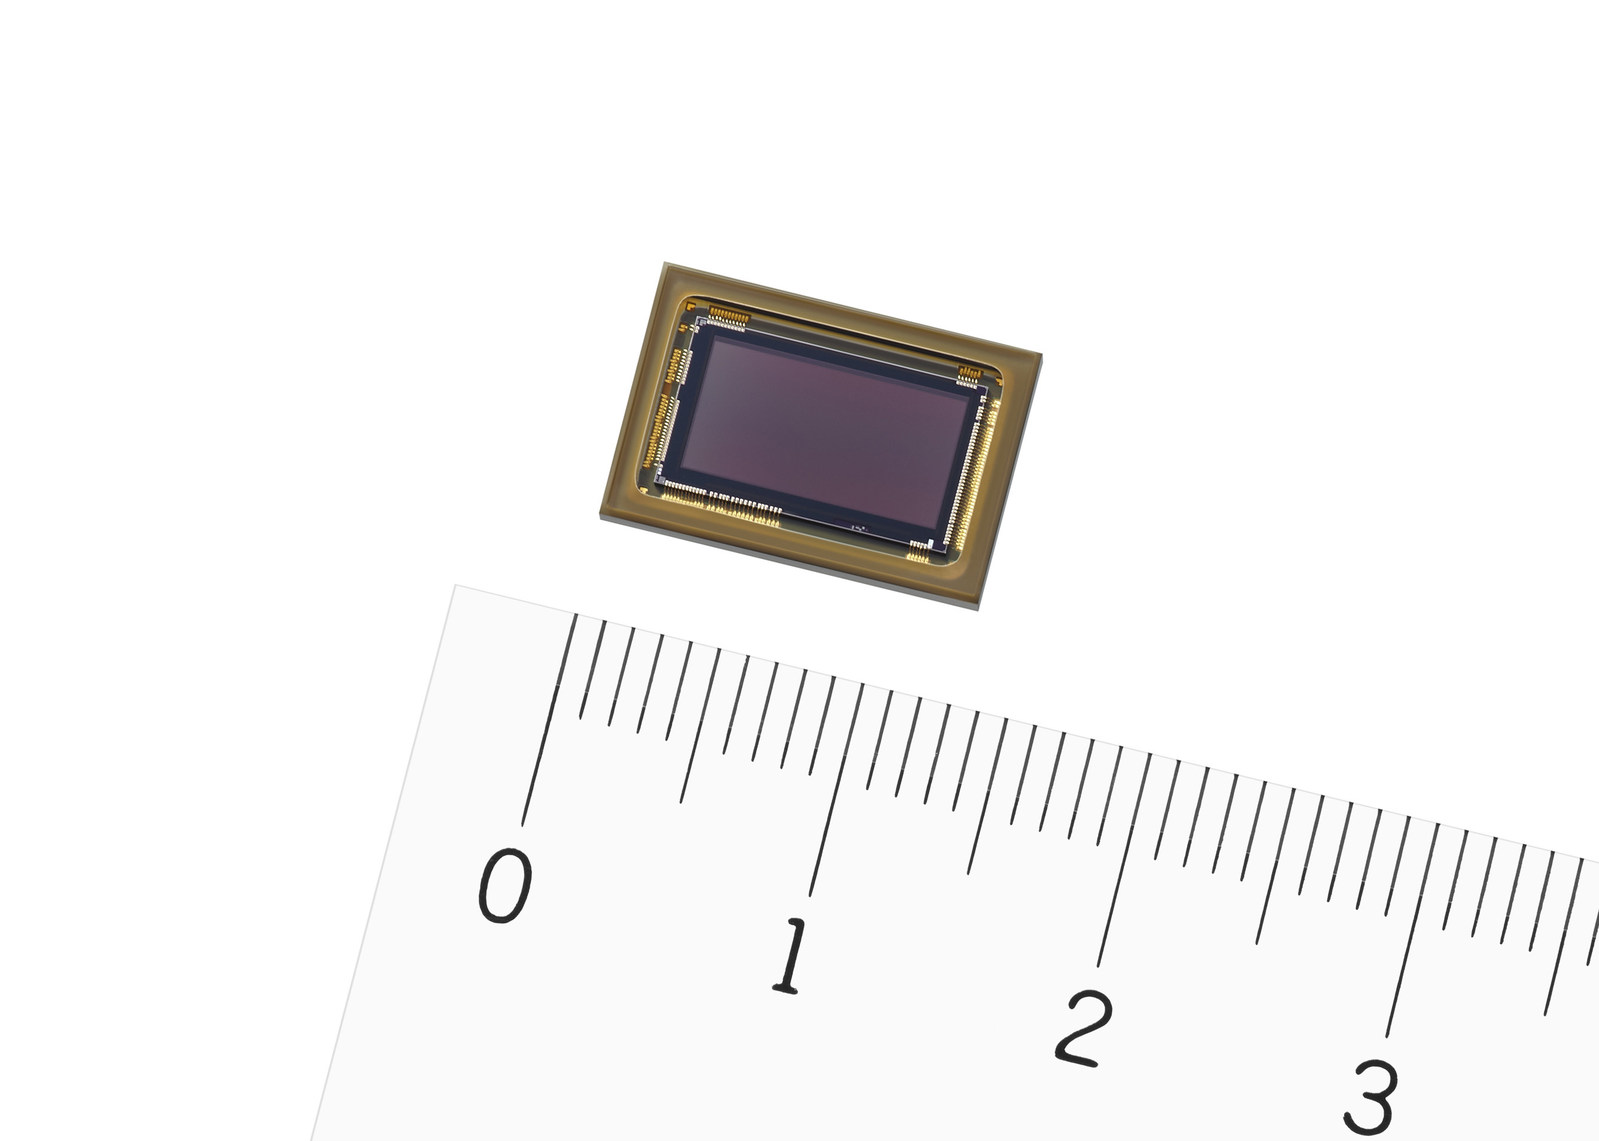 Sony releases the industry's highest resolution 7.42 effective megapixel stacked CMOS image sensor for automotive cameras